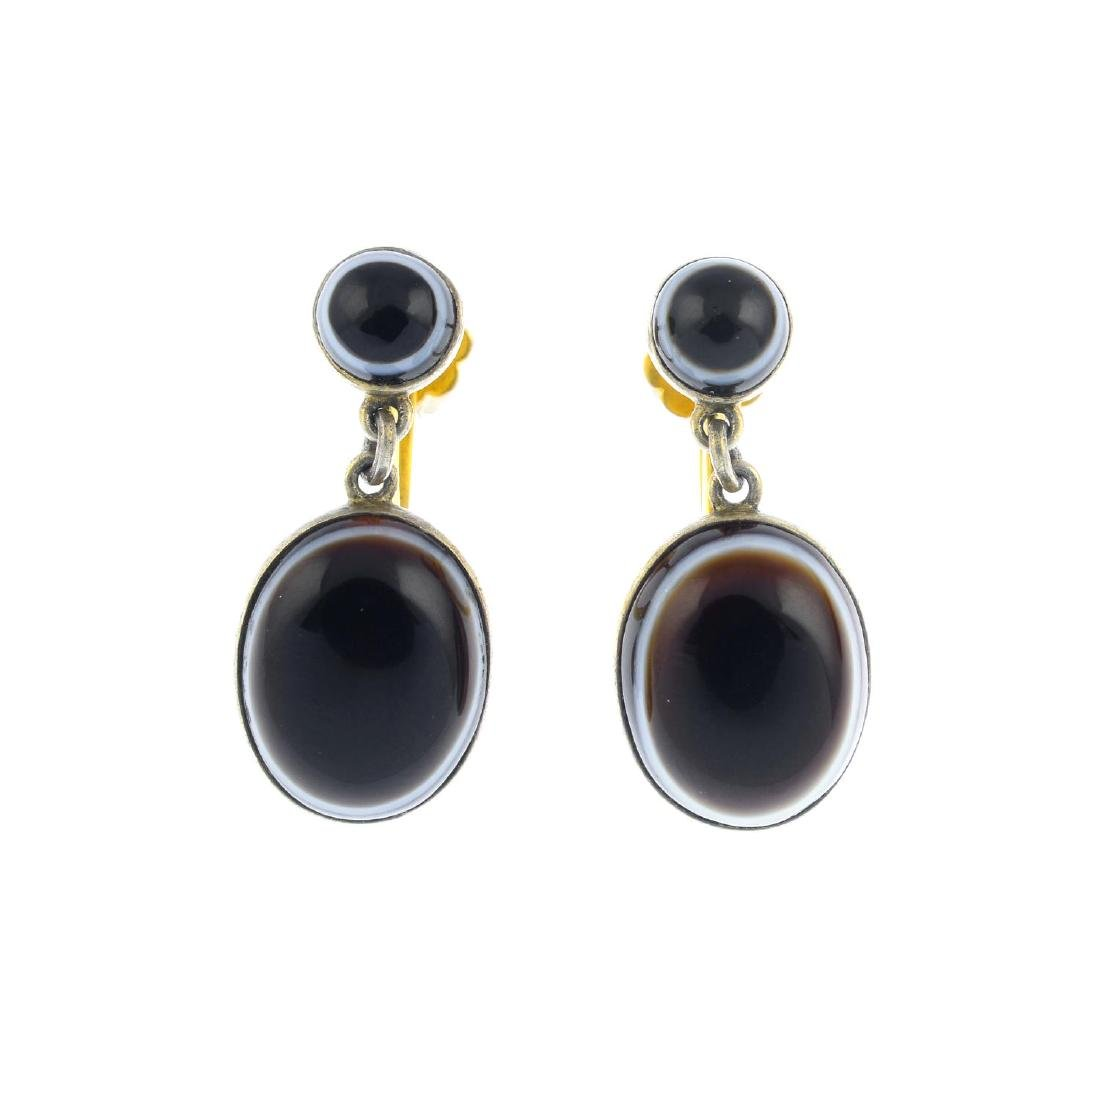 A pair of late Victorian banded agate earrings. Each